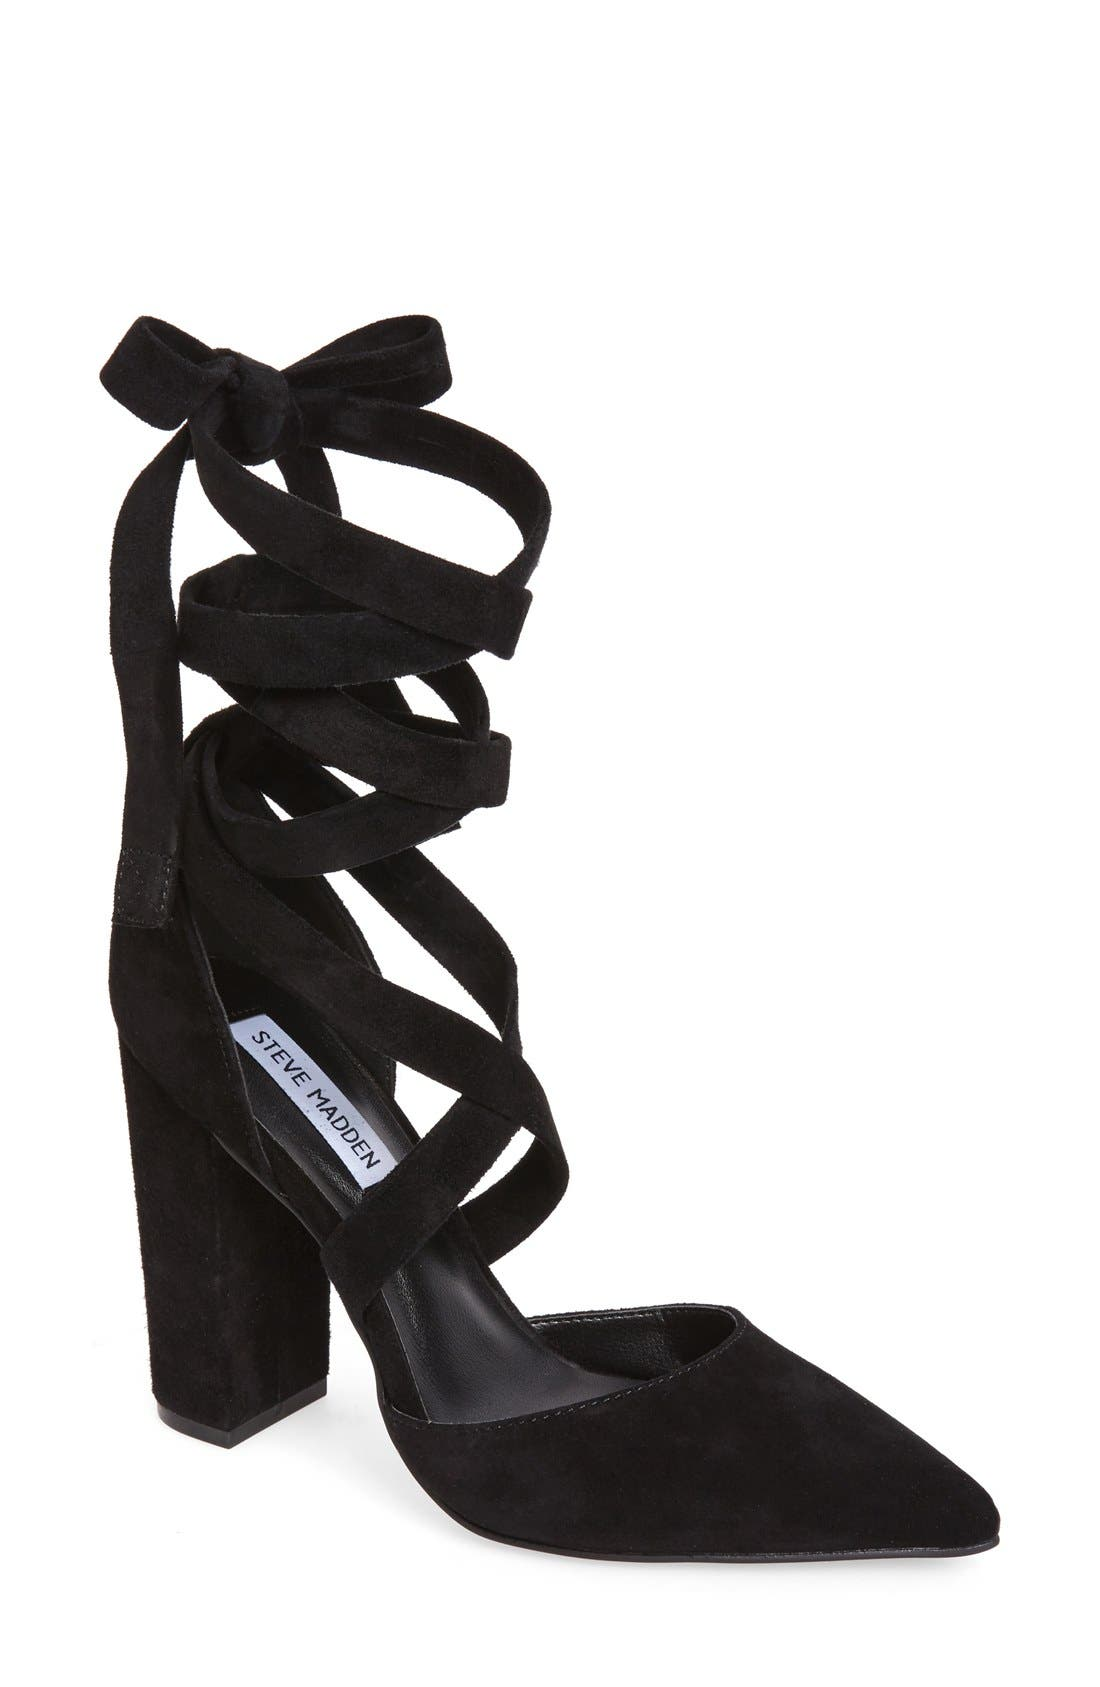 Alternate Image 1 Selected - Steve Madden Bryony Lace-Up Pump (Women)